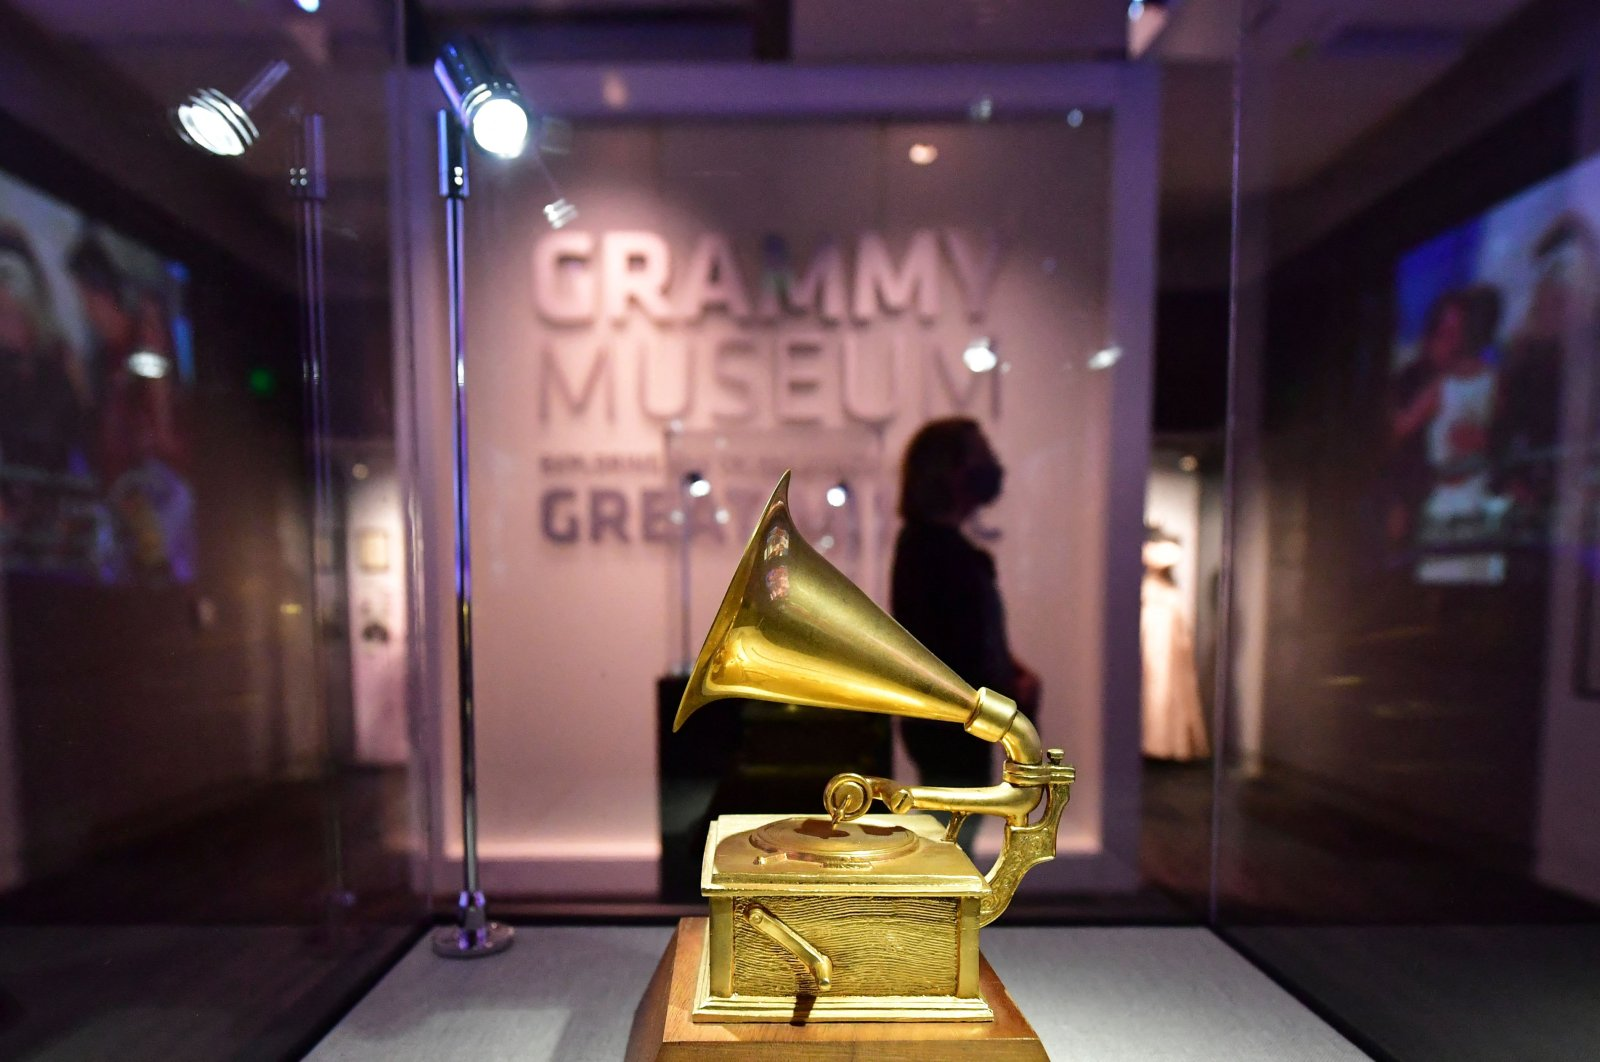 People visit the Grammy Museum on the first day of its reopening in Los Angeles, more than a year after the museum closed due to the global COVID-19 pandemic, Los Angeles, U.S., May 21, 2021. (AFP Photo)